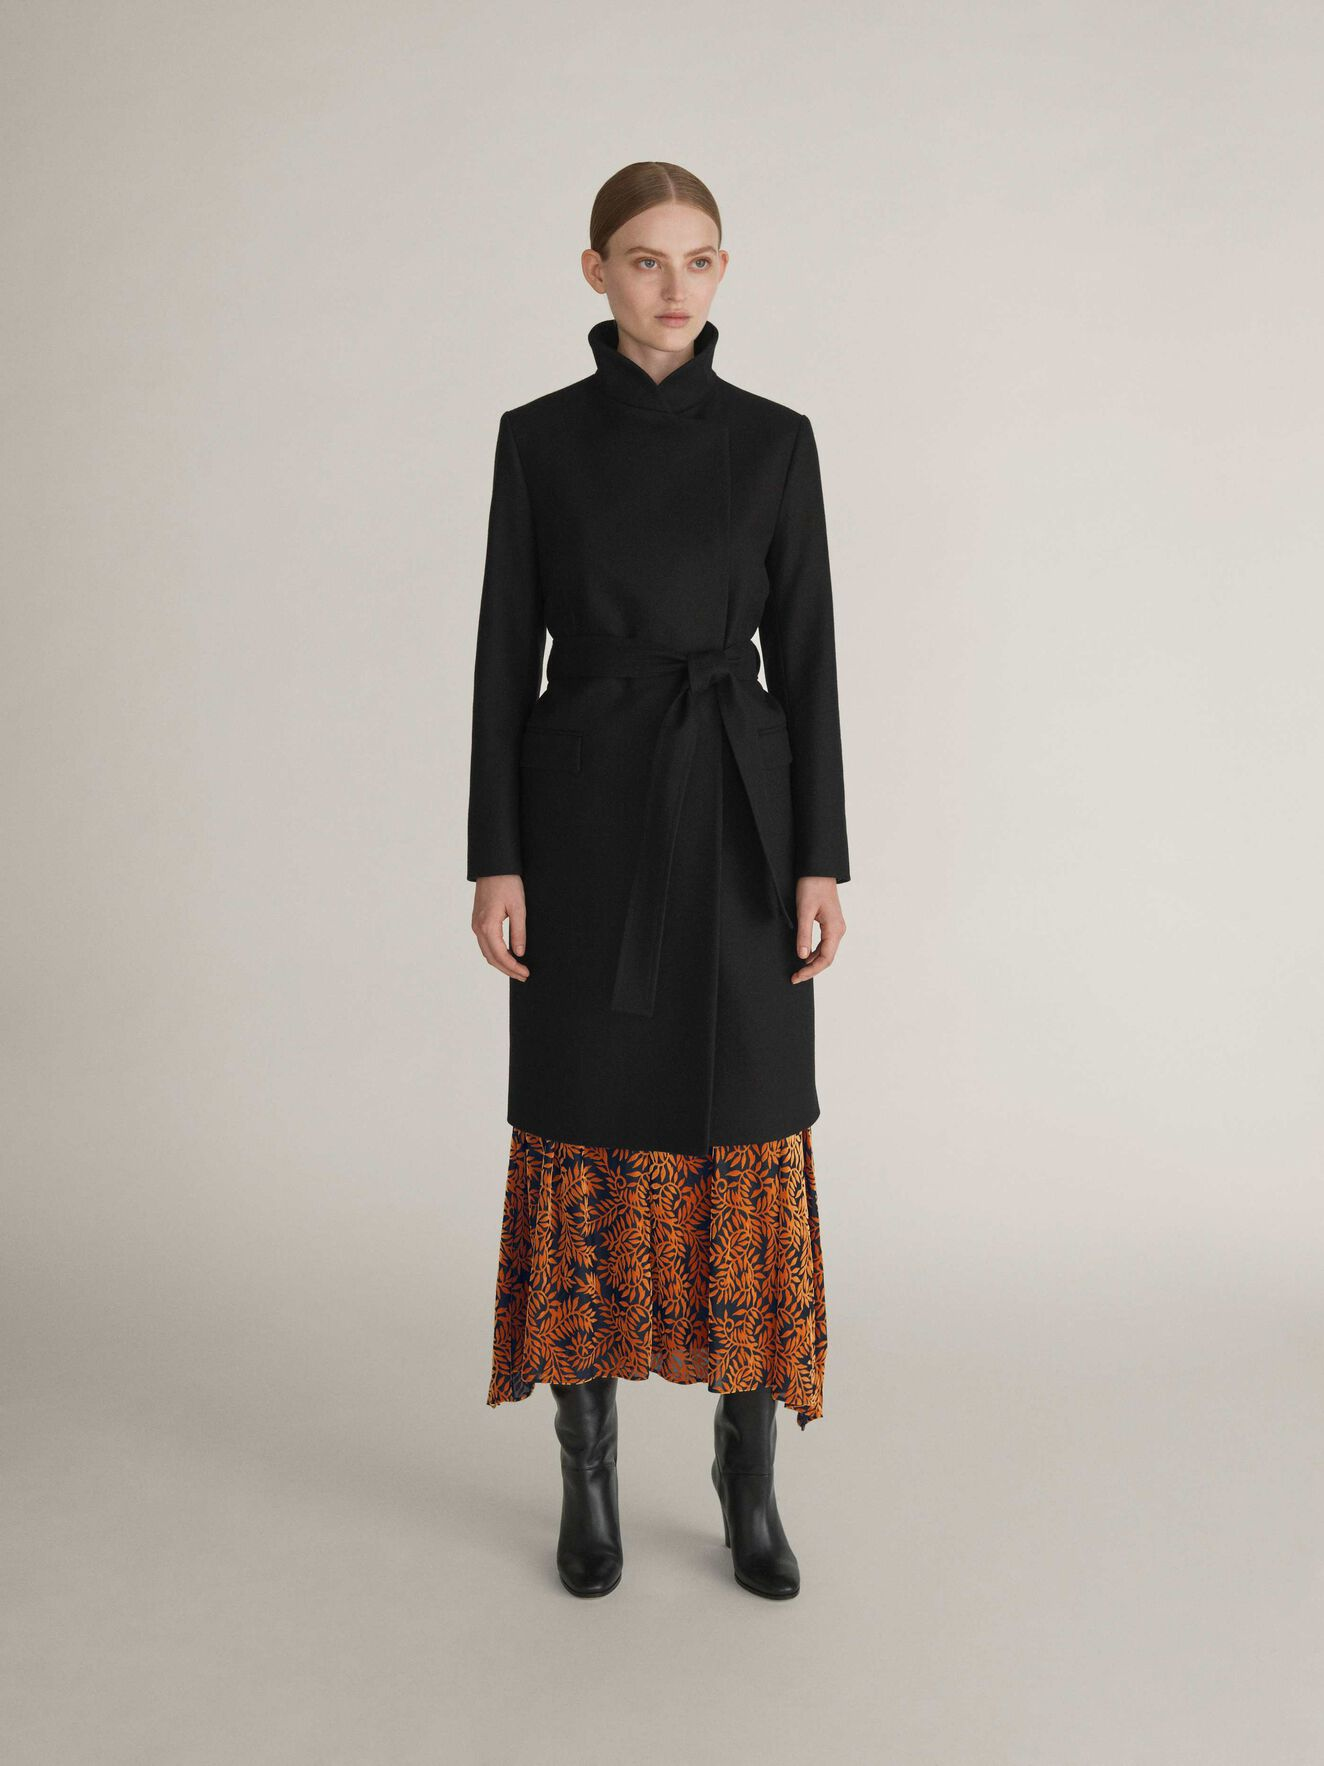 Knopp Coat in Black from Tiger of Sweden